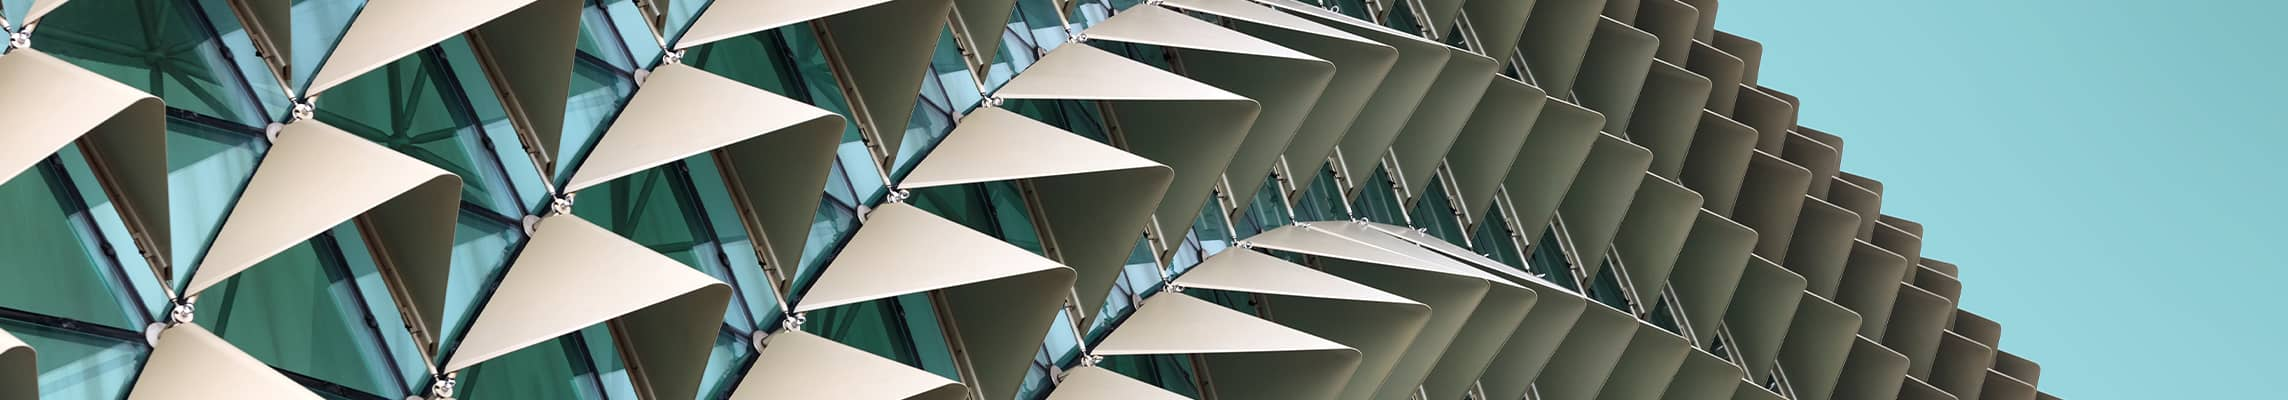 Abstract view of building exterior